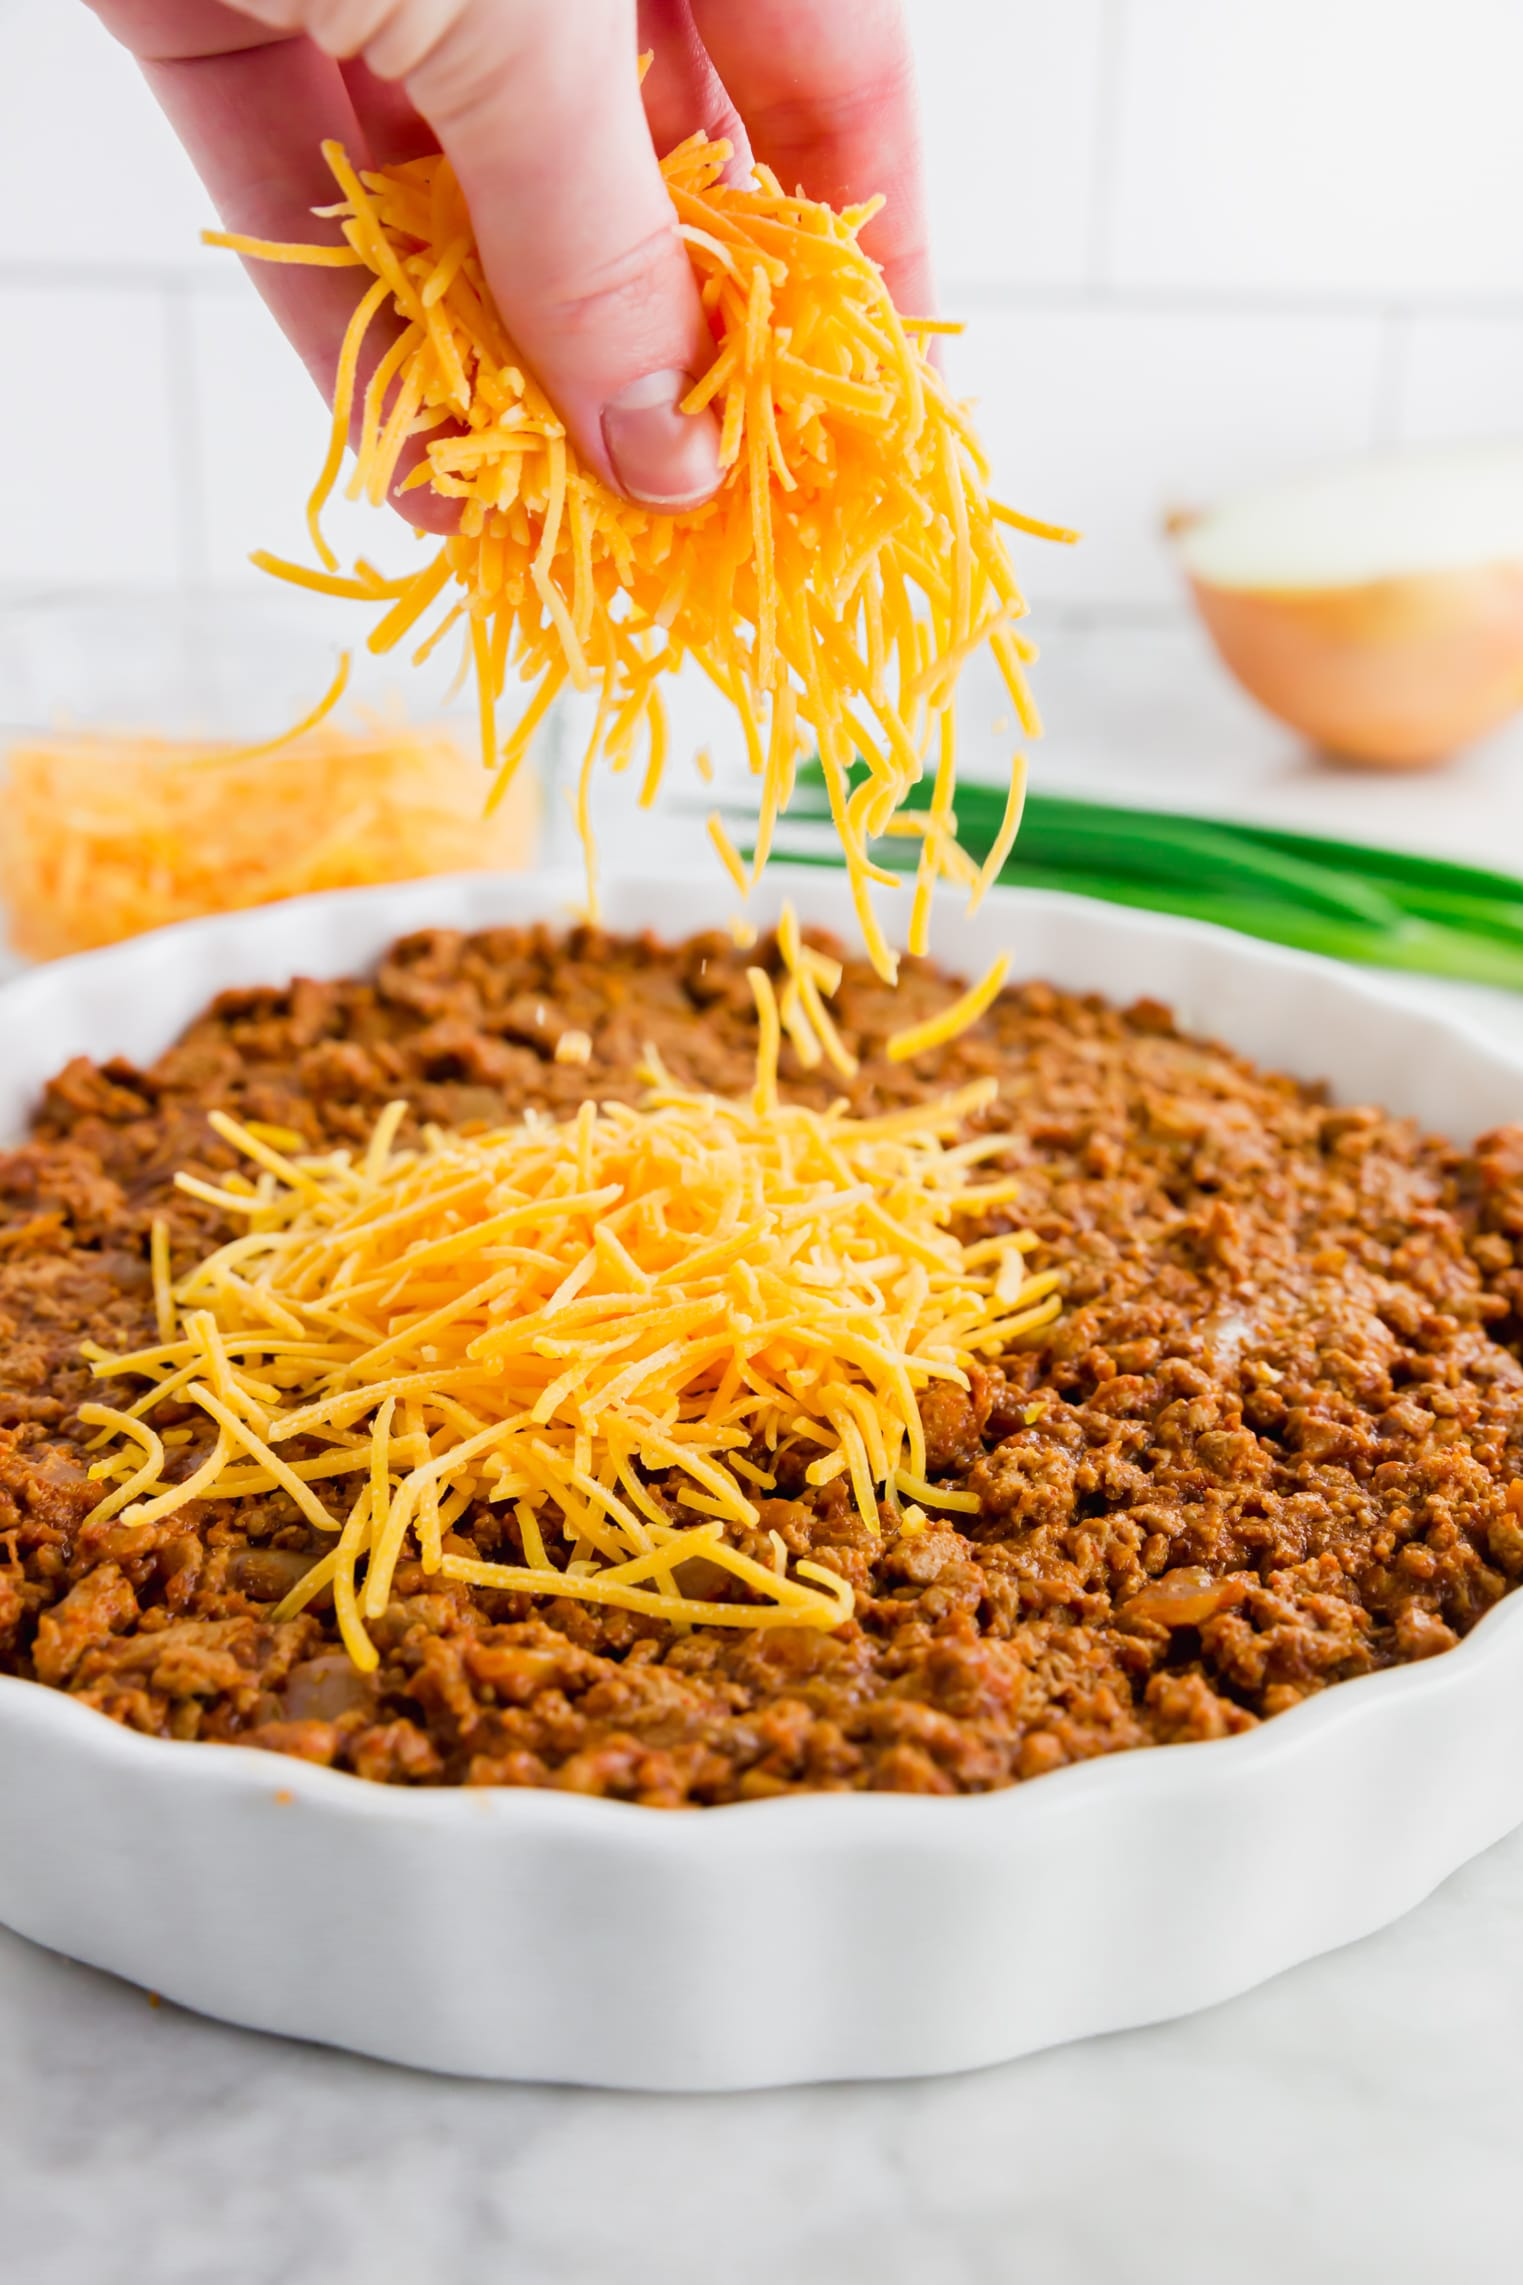 A photo of shredded cheddar cheese being sprinkled over turkey chili for gluten-free chili dip.